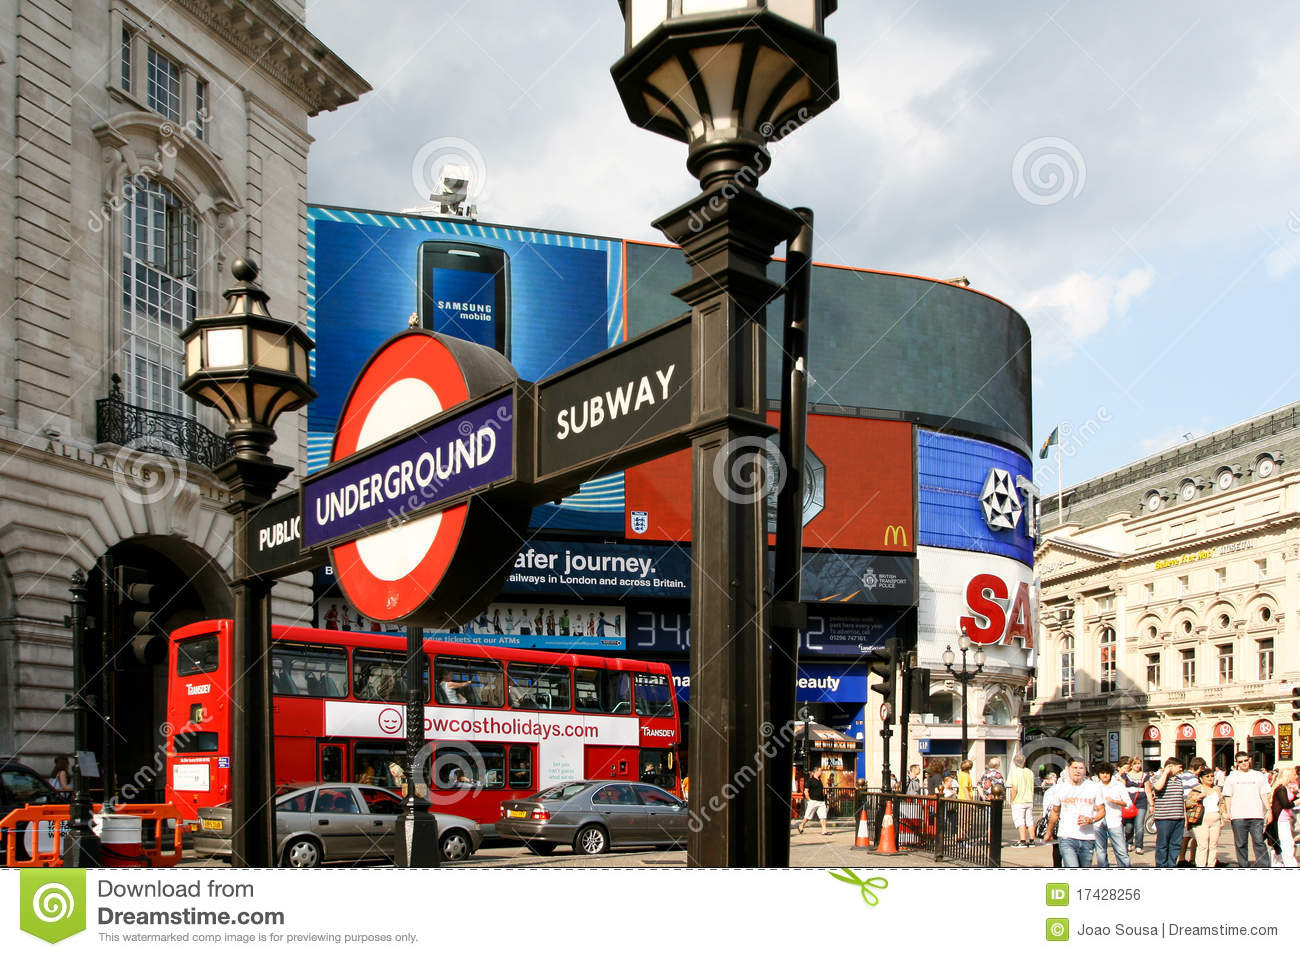 Talk:Piccadilly Circus